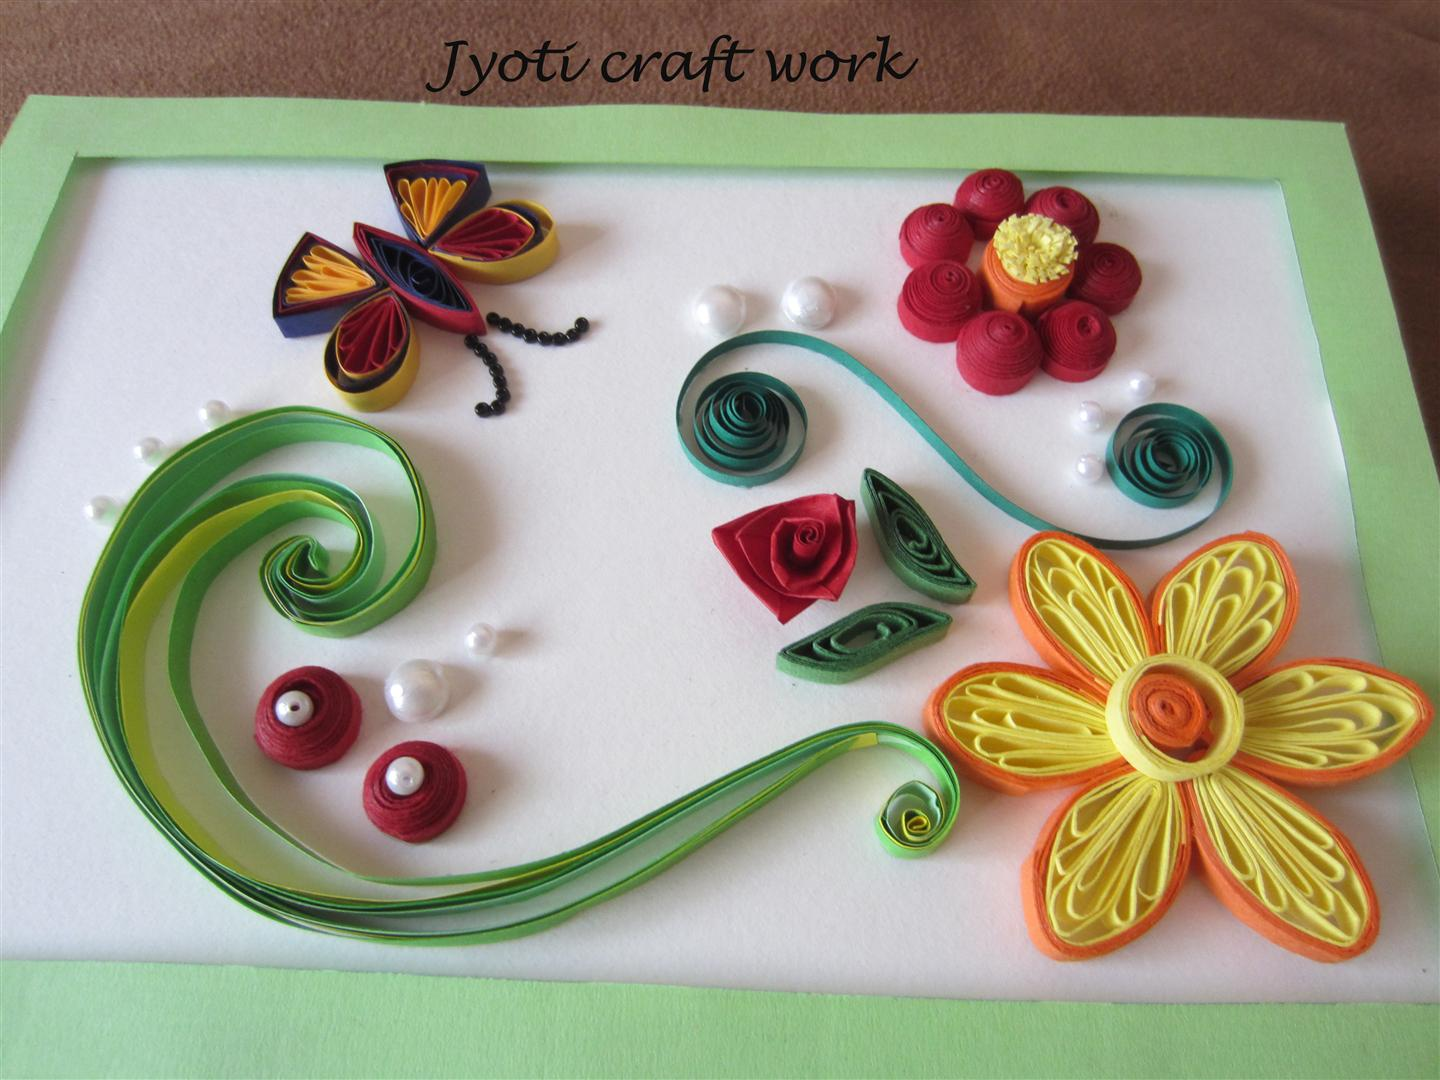 My craft work: Quilling birdies :)